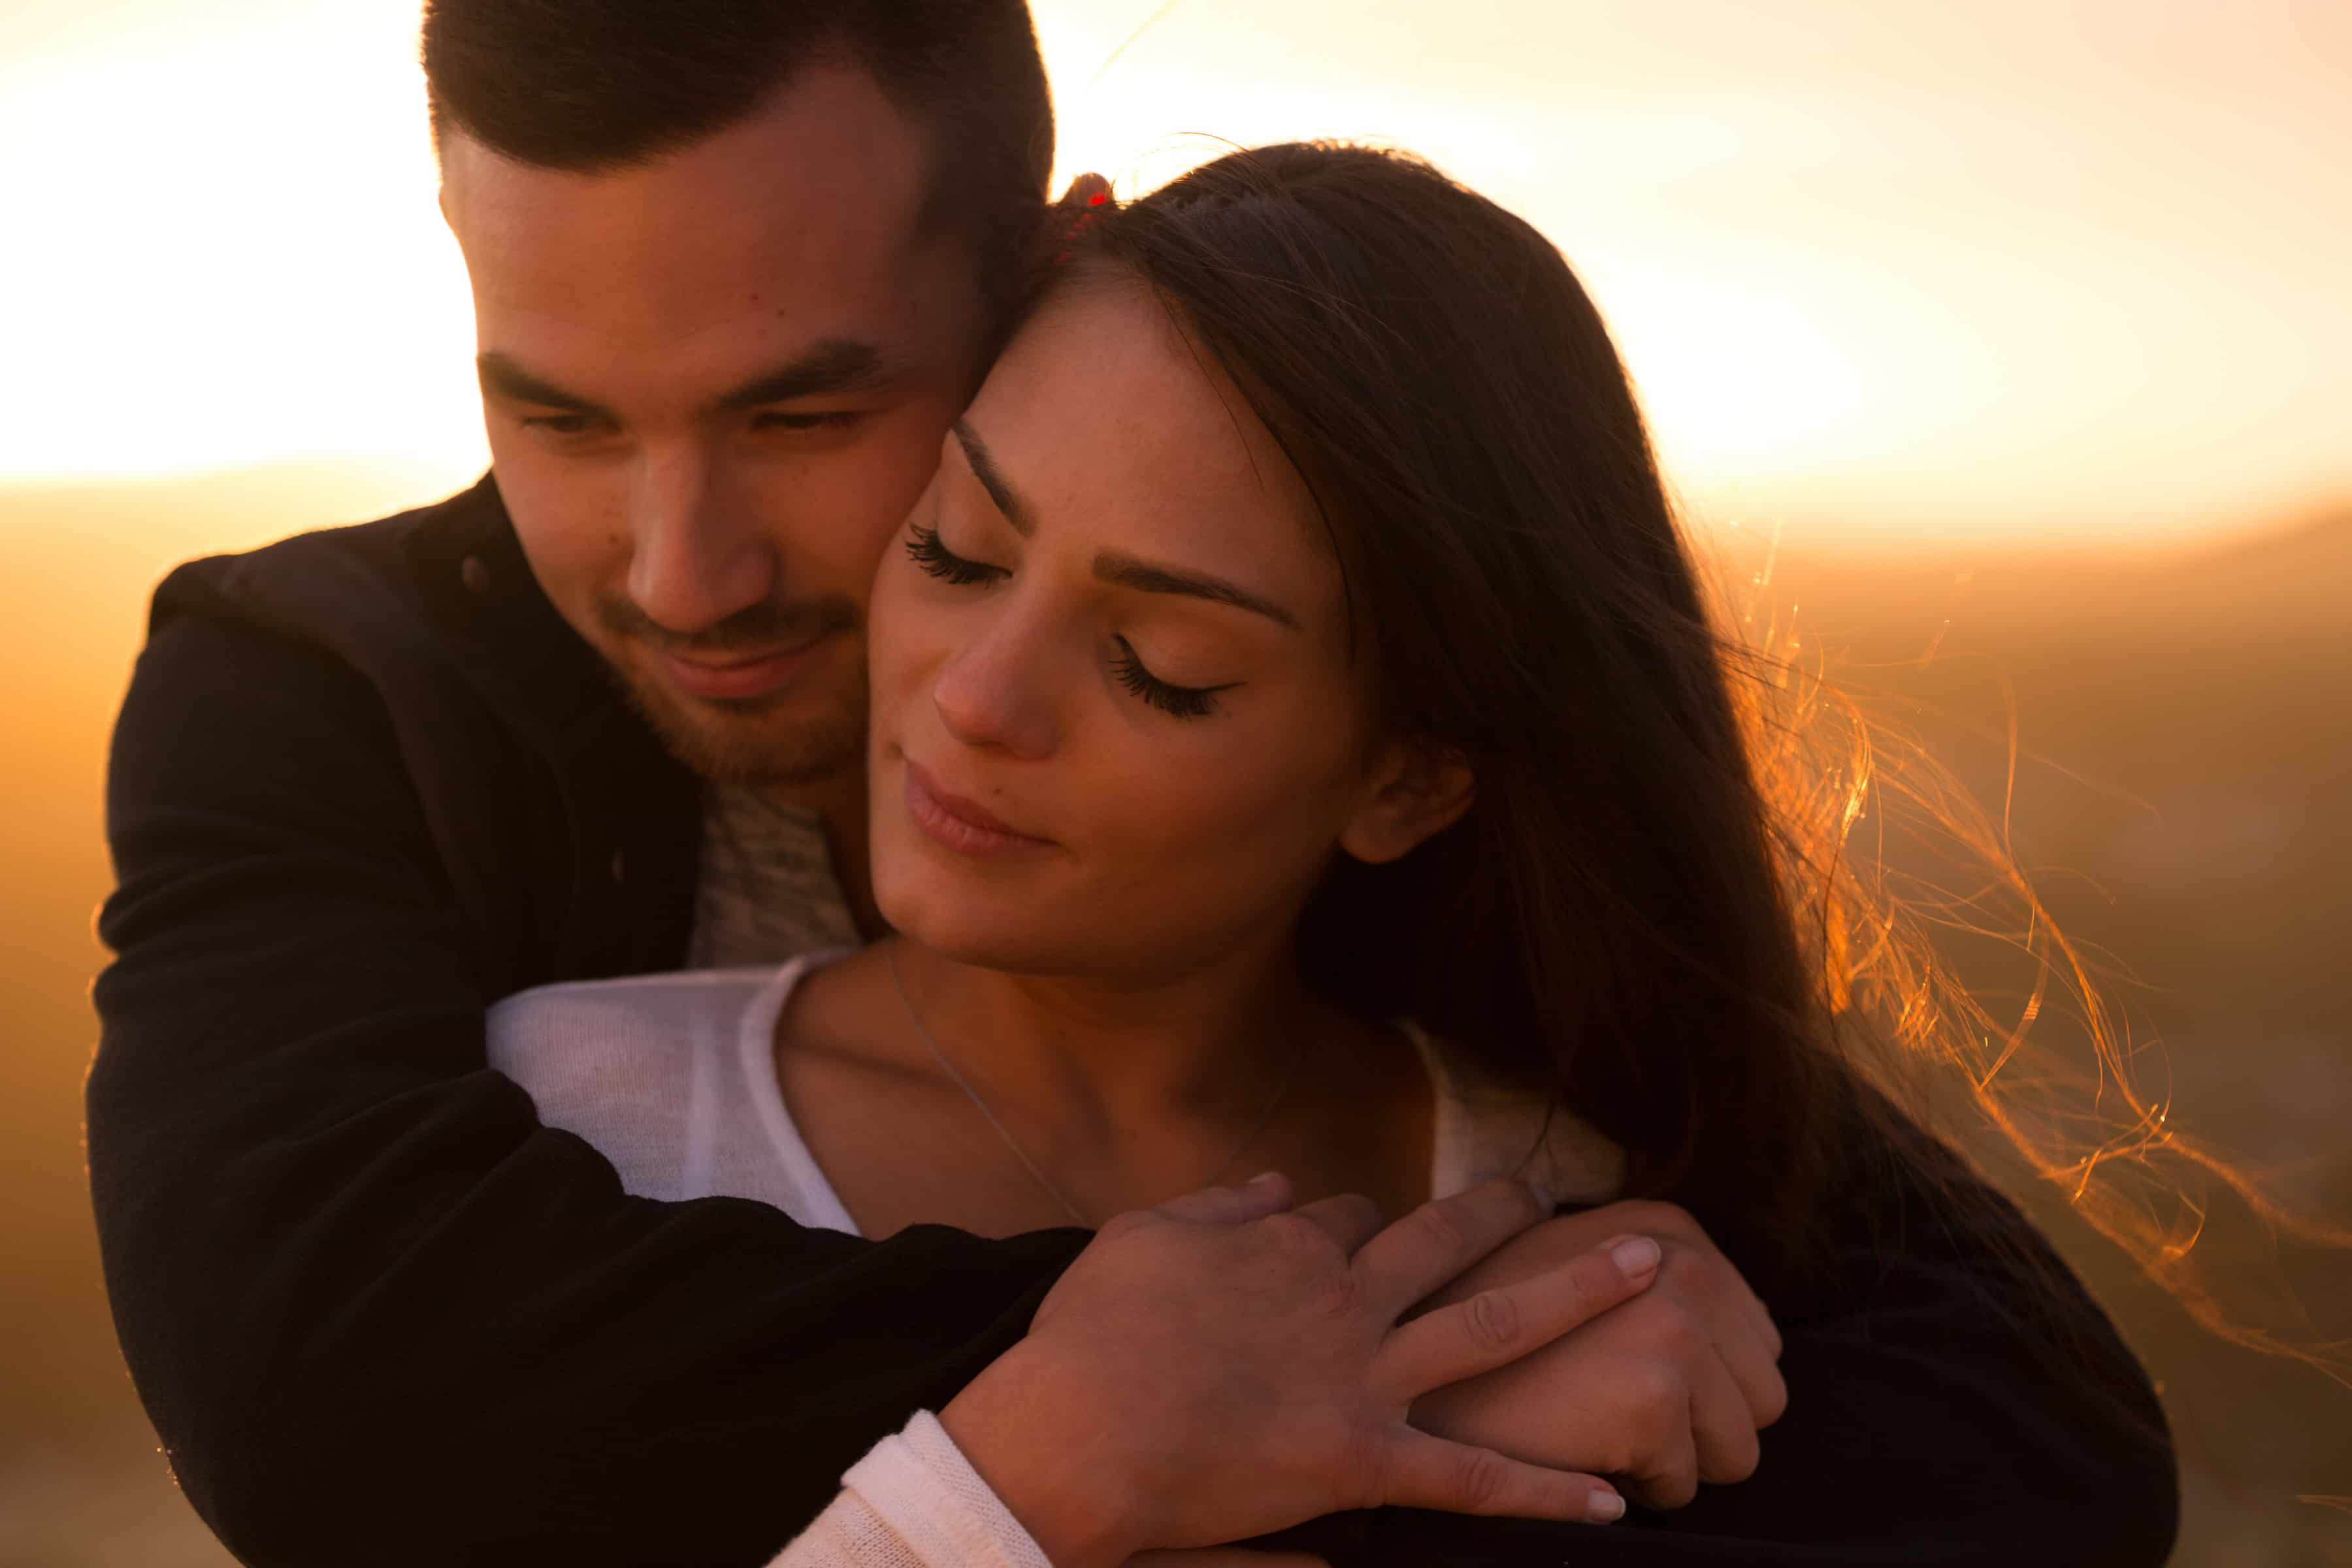 Couple embracing with sunset behind them